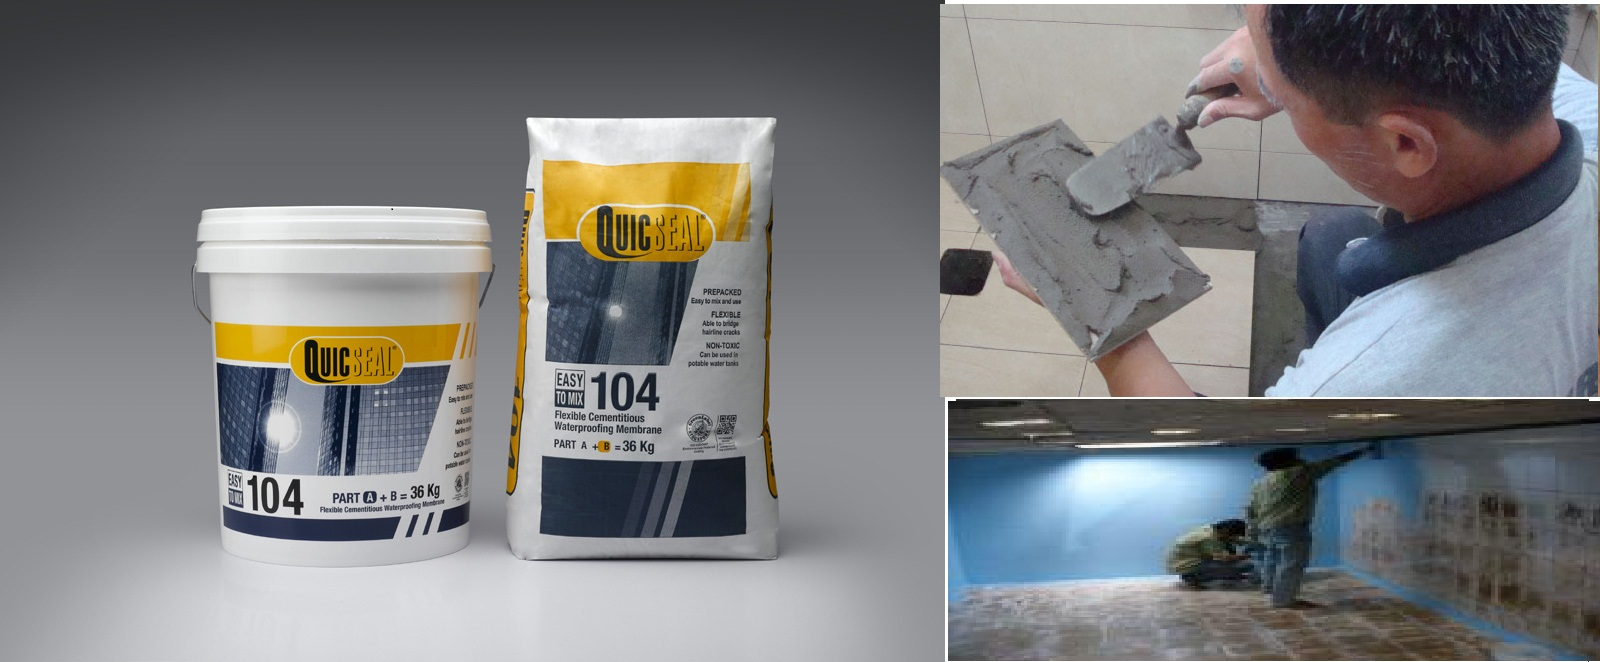 Apartment toilet waterproofing with Quicseal 104s